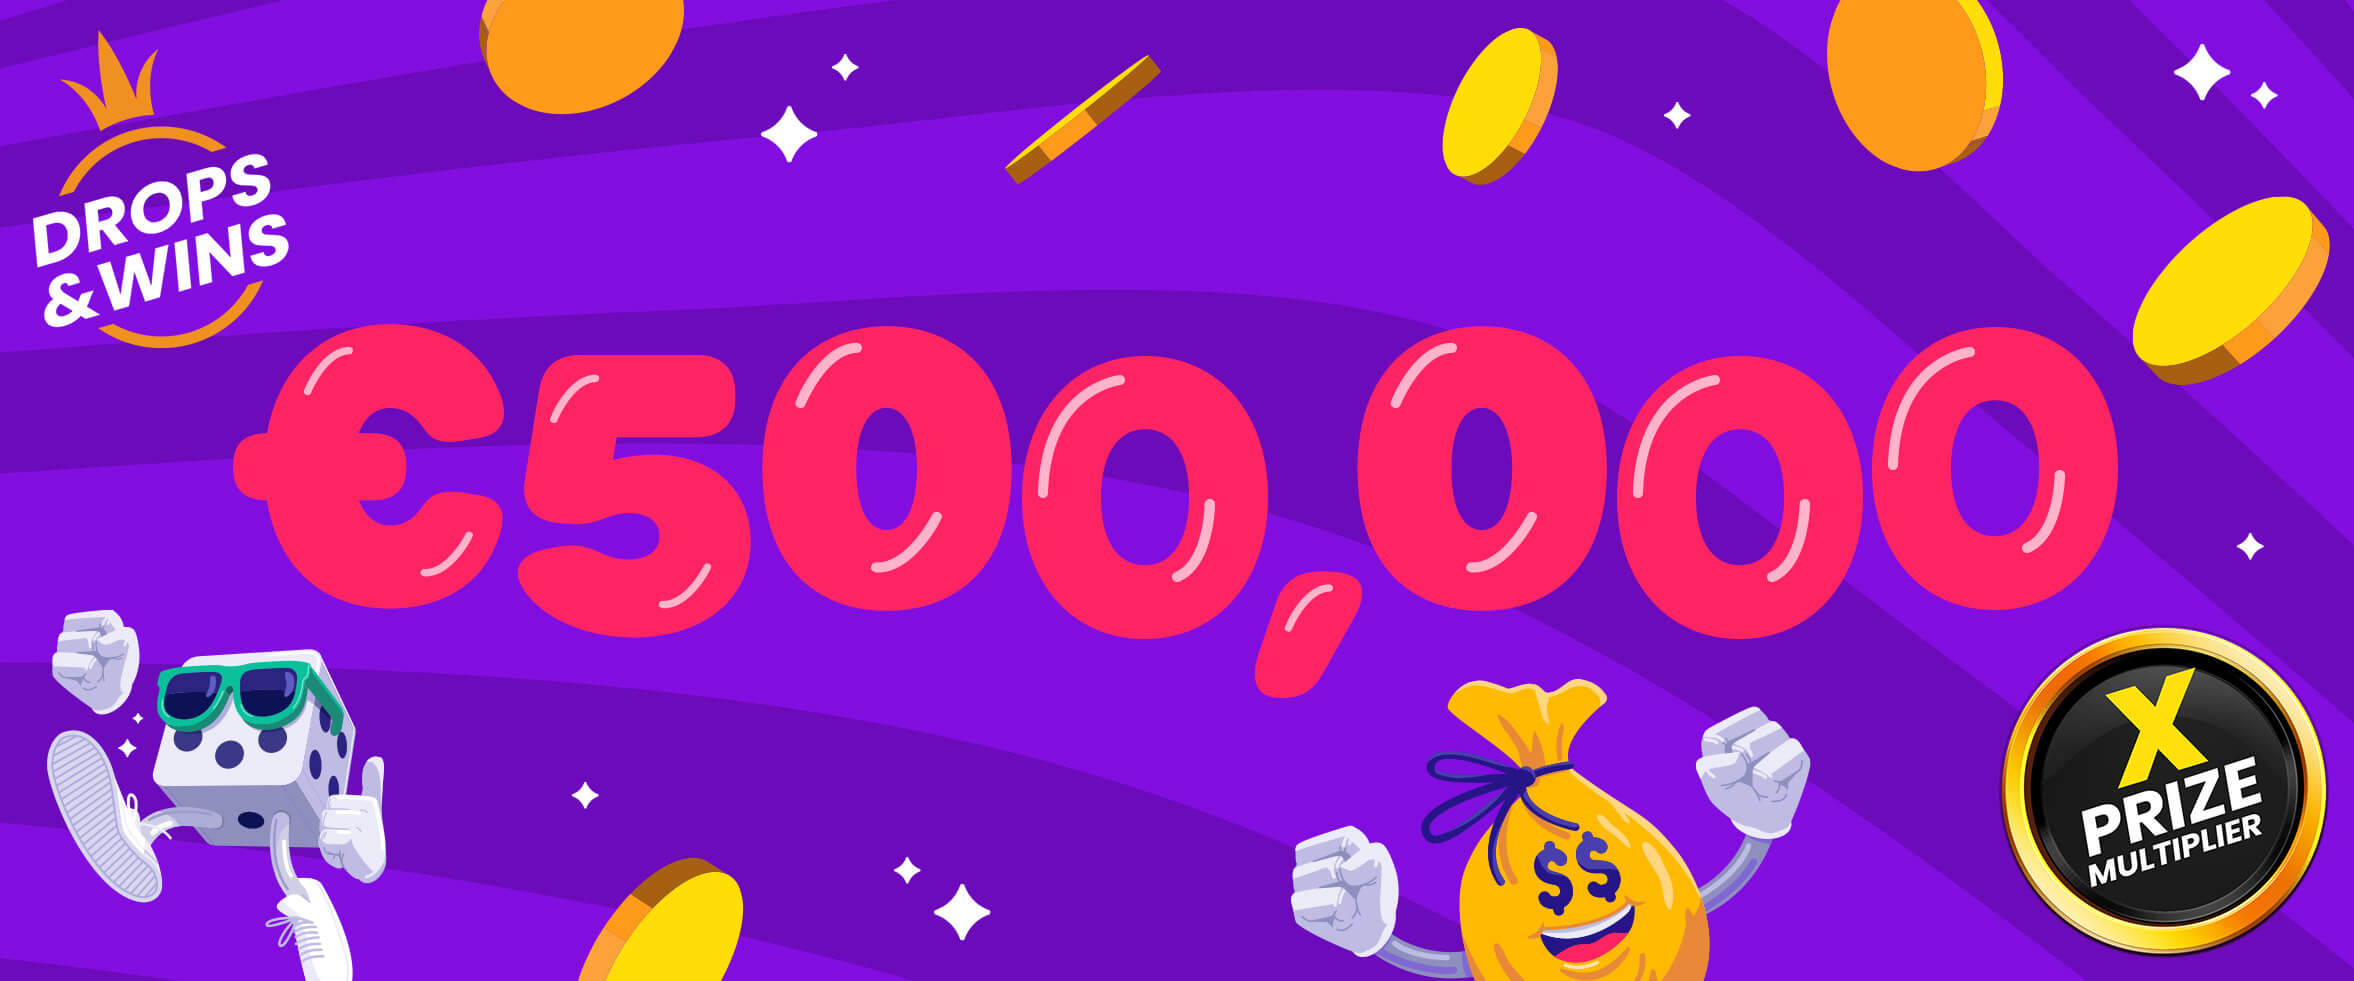 Pragmatic Play Doubles Drops & Win Monthly Prizes to €500K